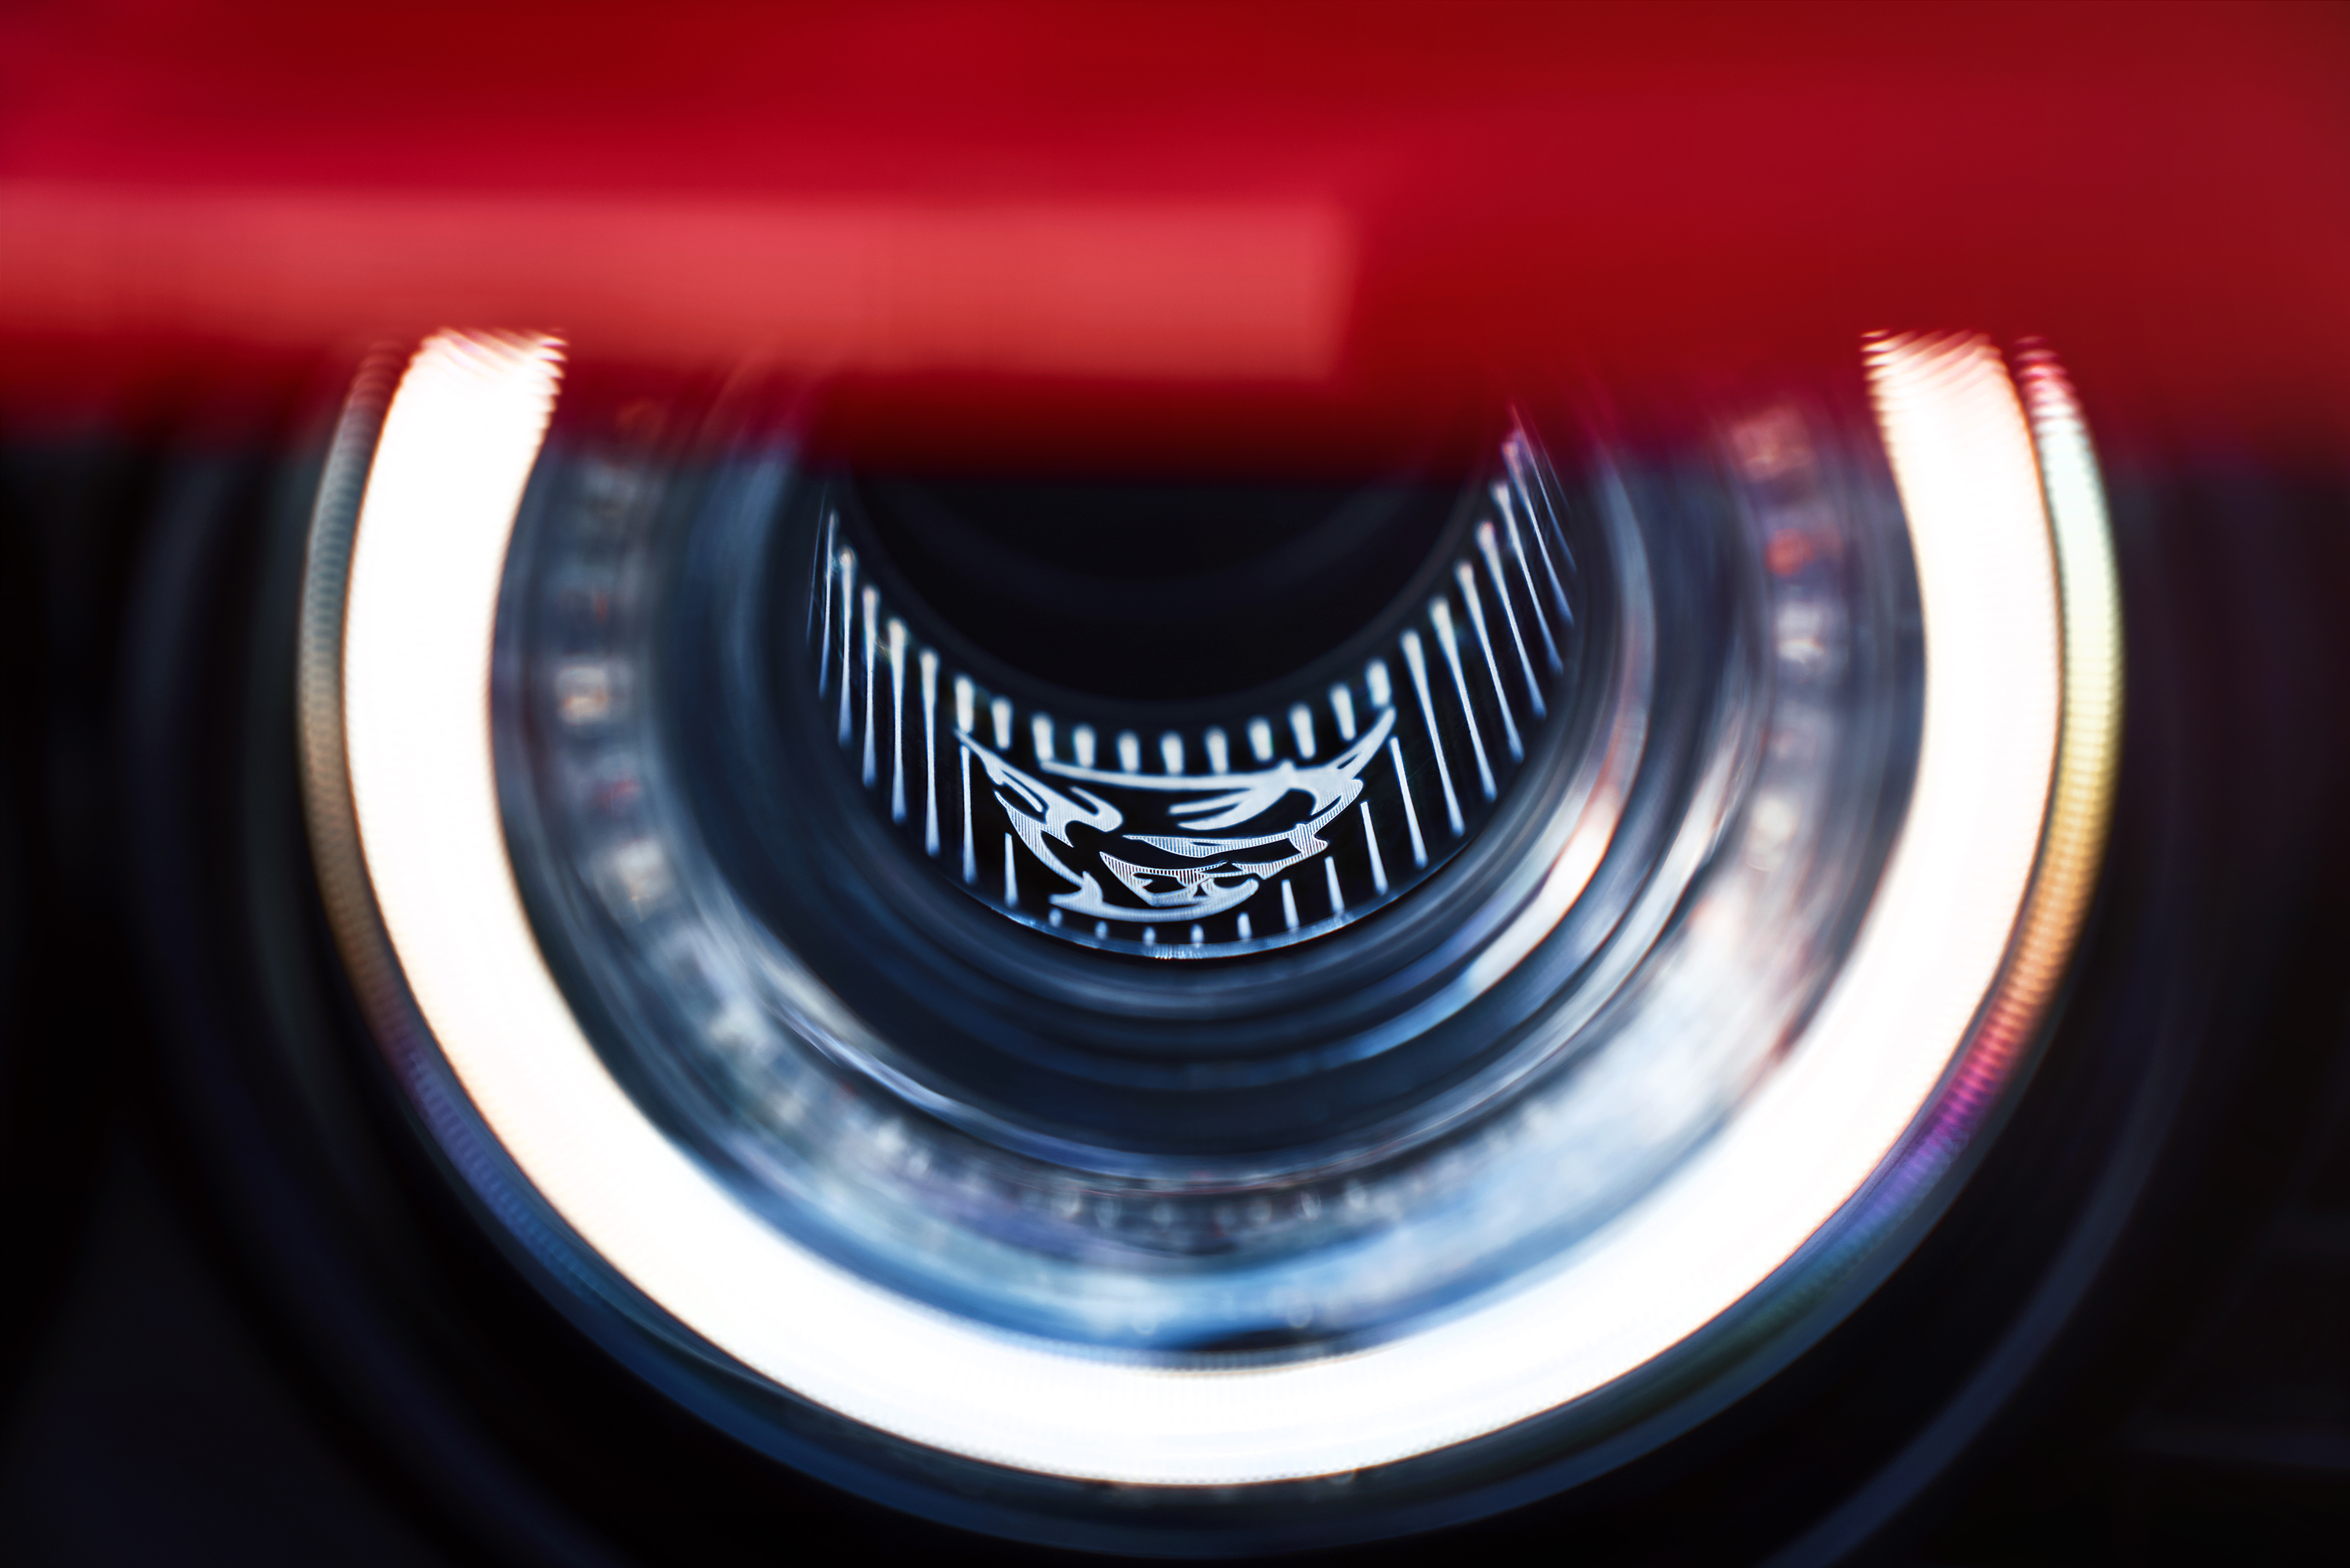 2018 Dodge Challenger SRT Demon headlight detail